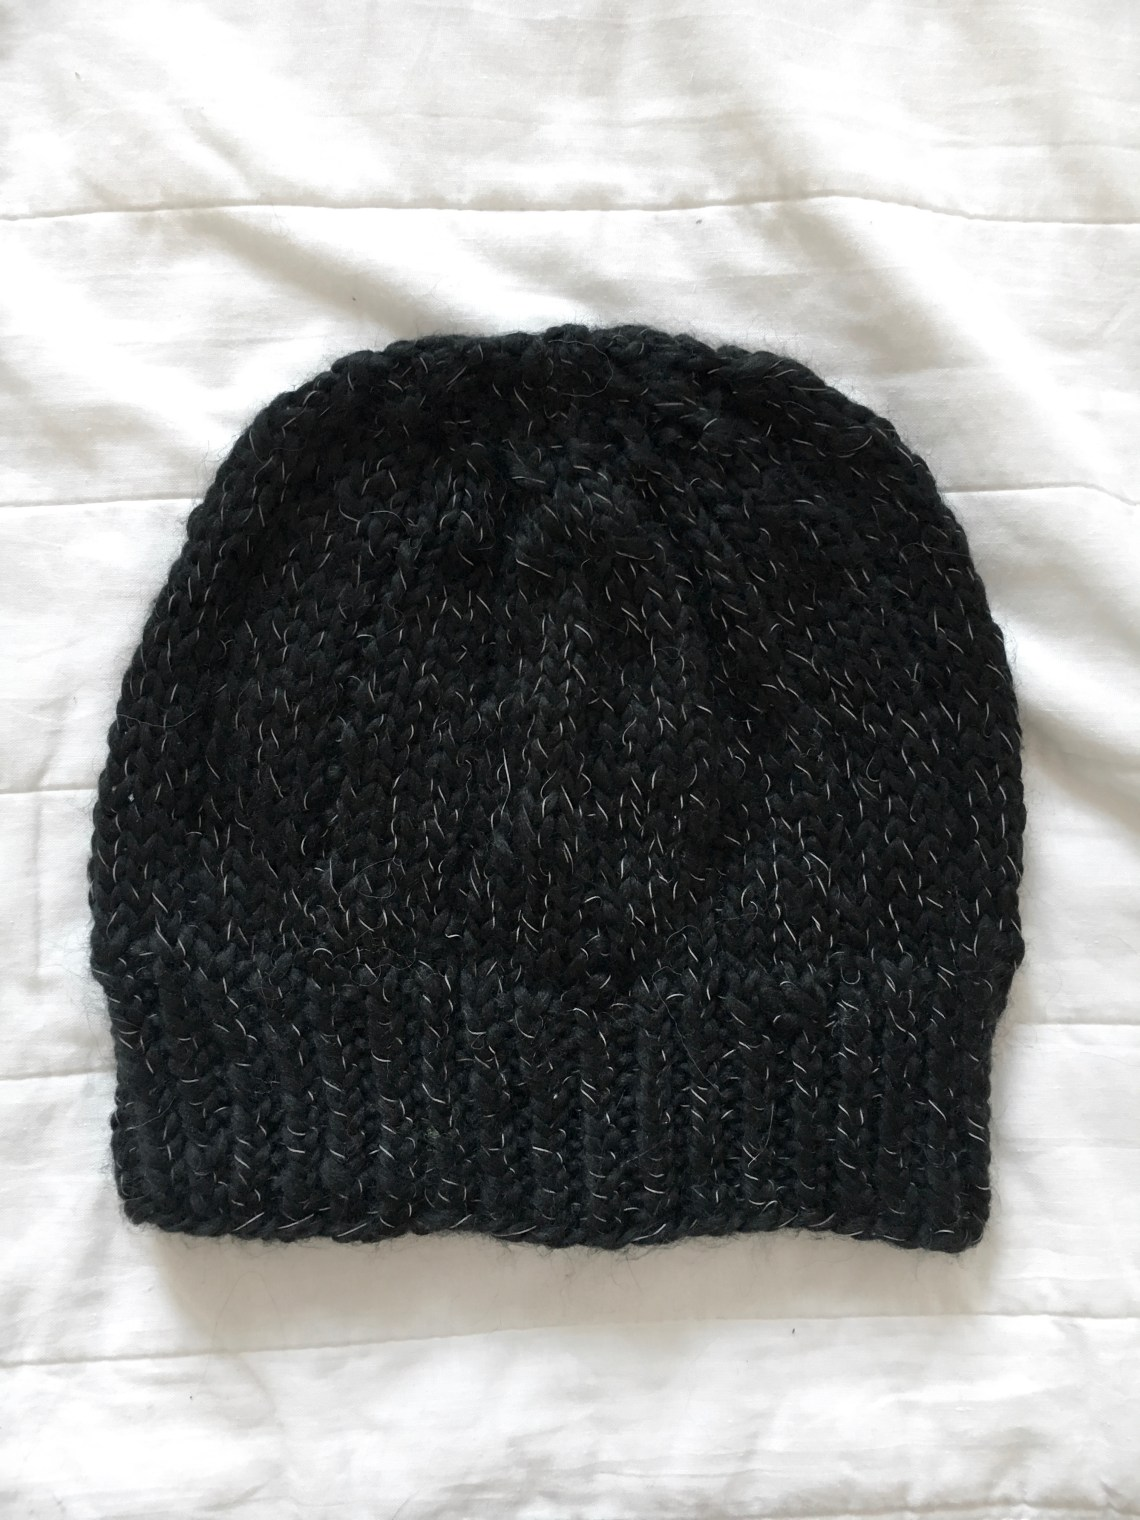 A simple hat in nice yarn, plain Christmas knitting.